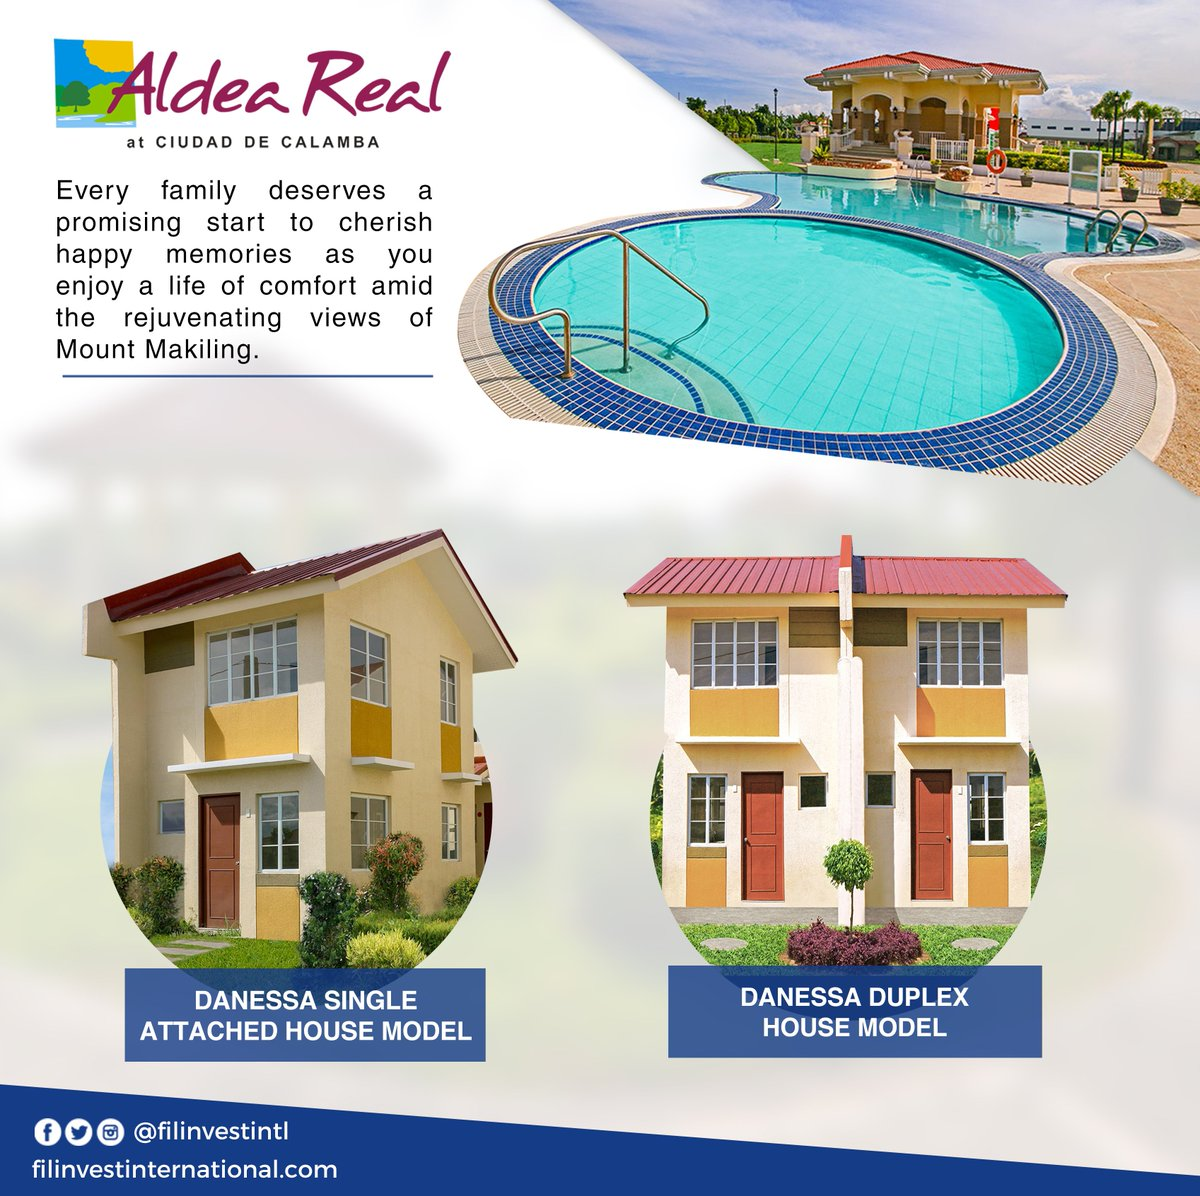 Hi kabayan!  Love the serene environment while you enjoy access to life's necessities at #AldeaReal  For inquiries on Aldea Real, you may send us a message.  #Filinvest #FilinvestInternational #OFW #Investment #RealEstate #Opportunity #RentalIncome https://t.co/FvELtv4dwz